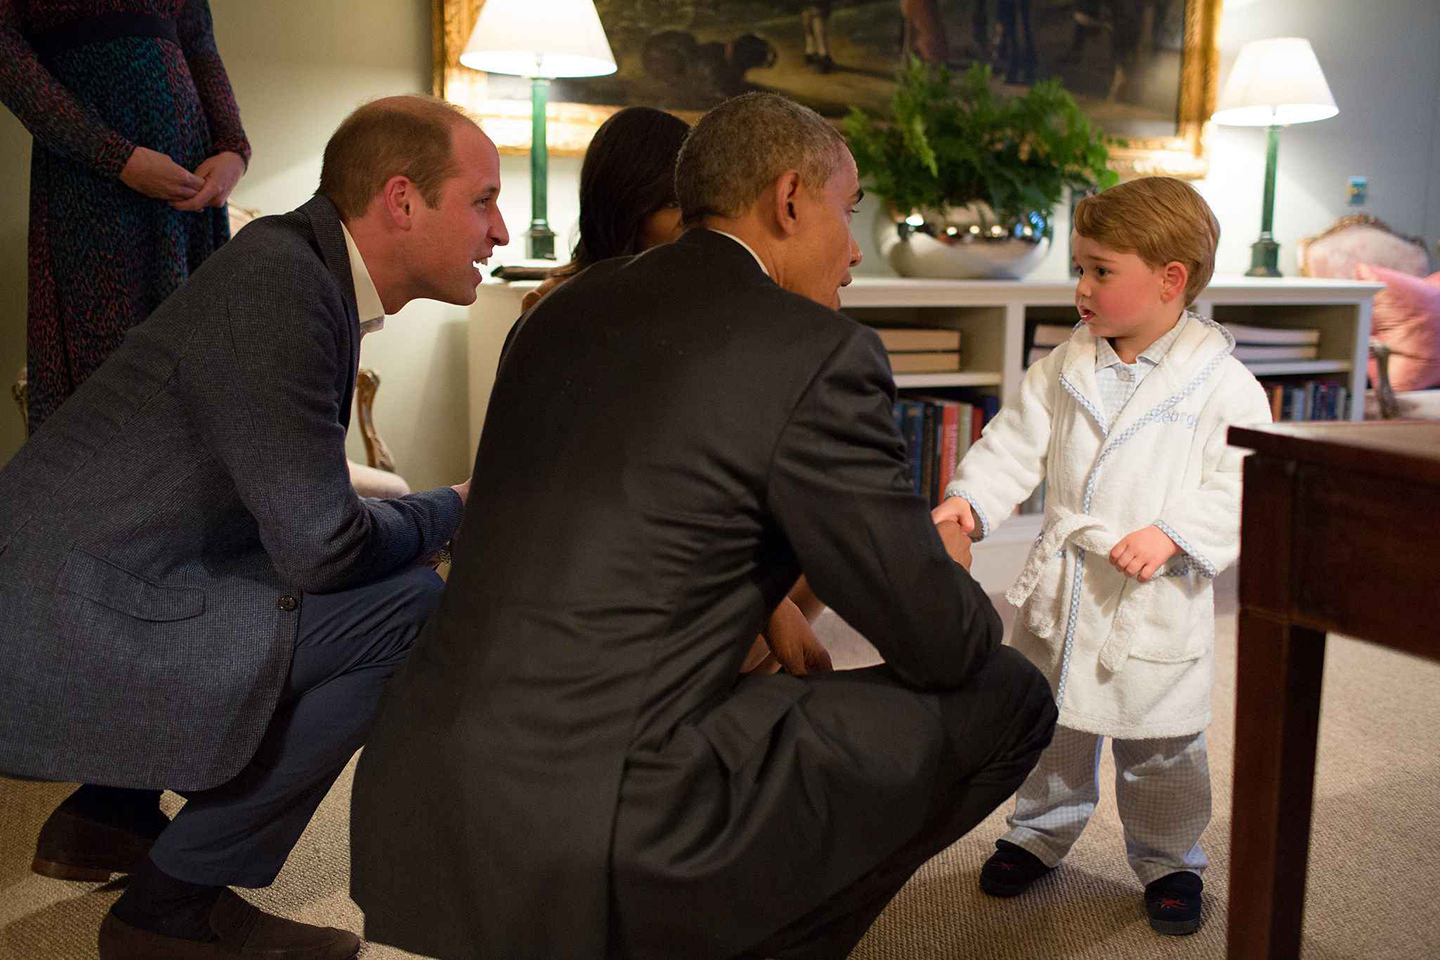 Blog-Mode-And-The-City-Lifestyle-Cinq-petites-Choses-176-Prince-George-Barack-Obama